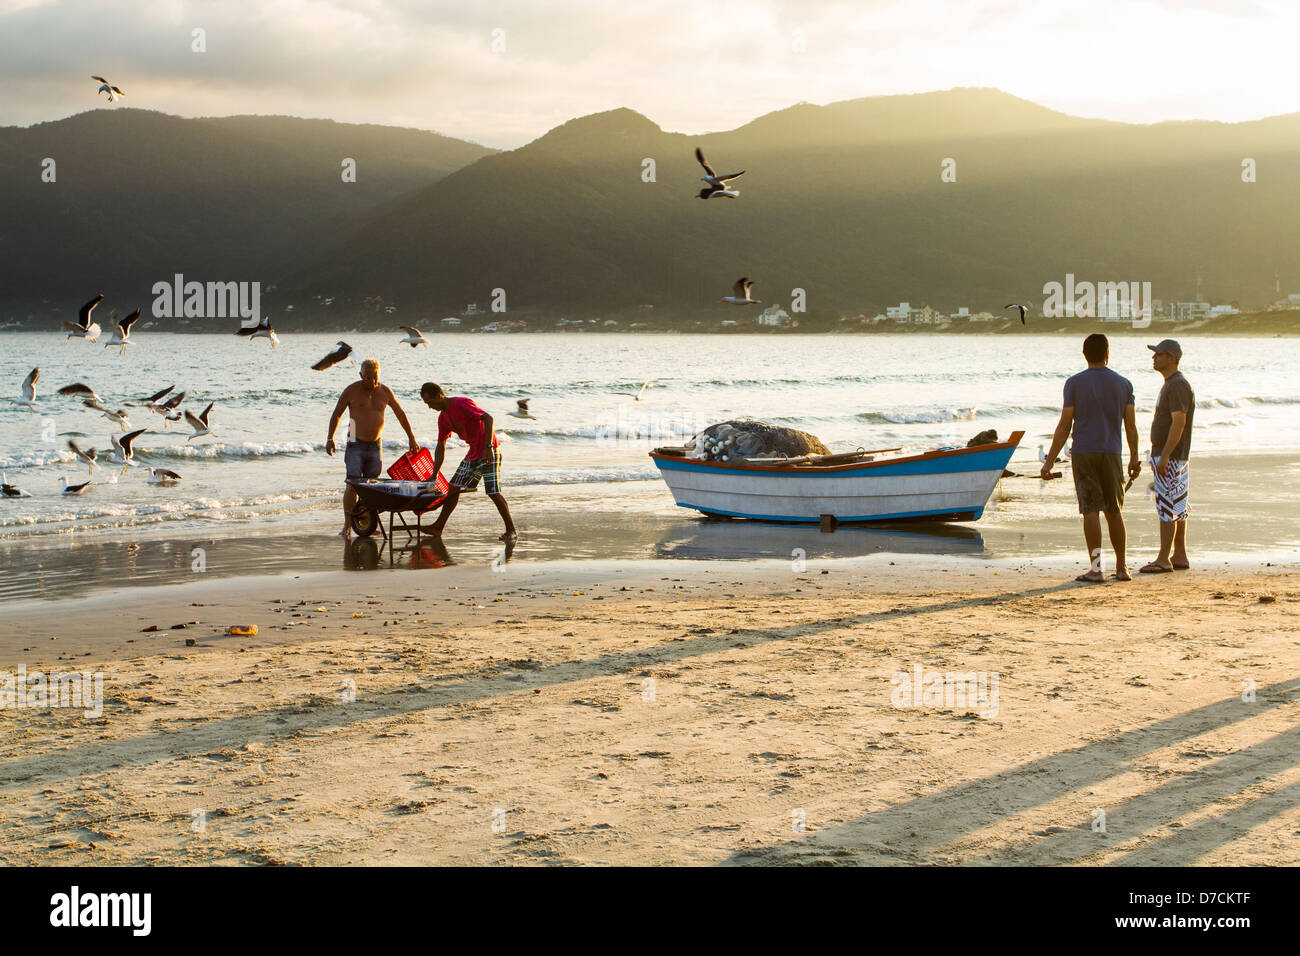 Fishermen and fishing boat on the sand at Pantano do Sul Beach. - Stock Image